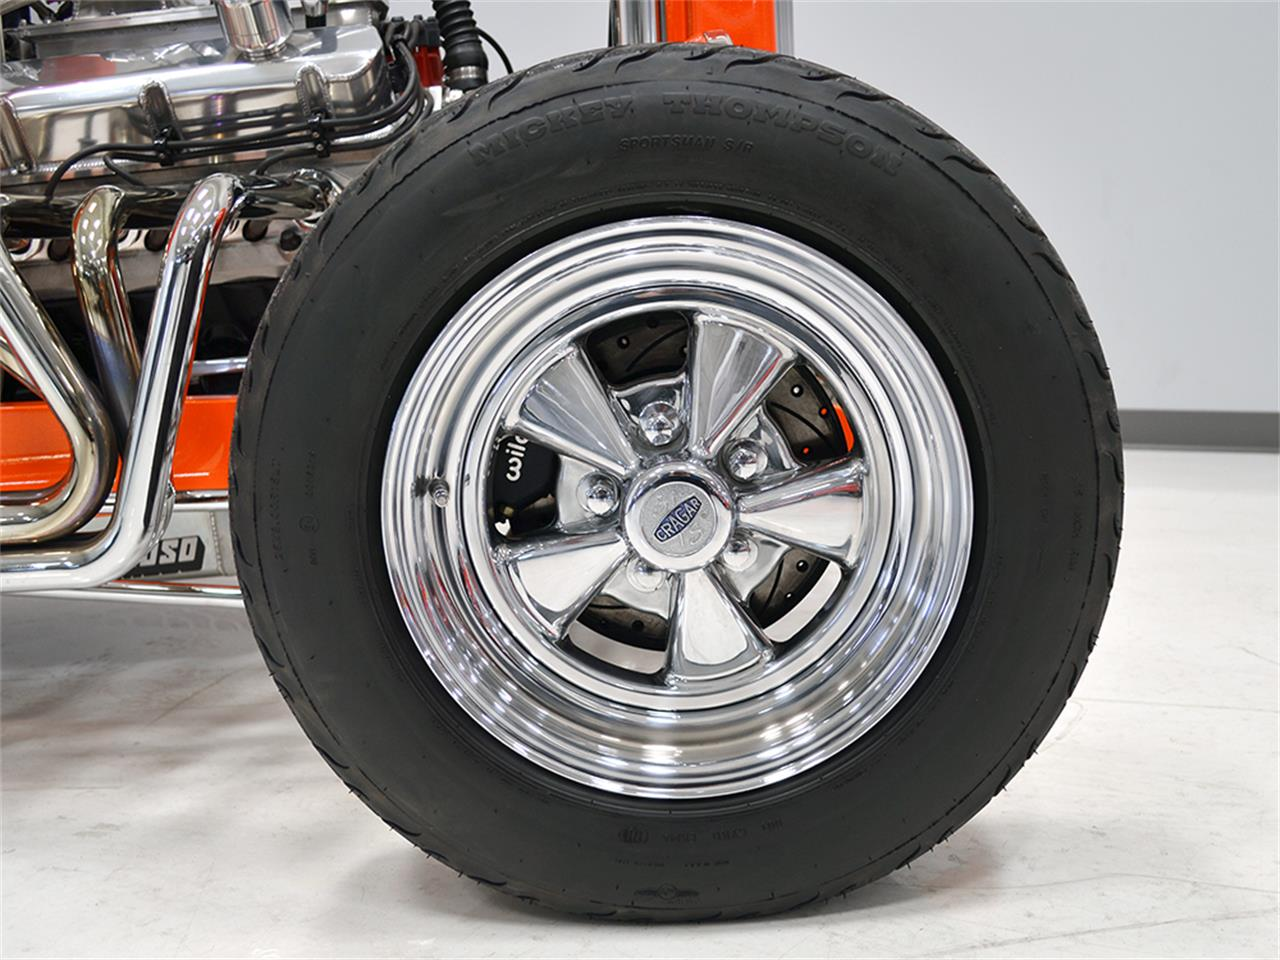 Large Picture of Classic 1932 Ford Roadster - $69,900.00 Offered by Harwood Motors, LTD. - F13N